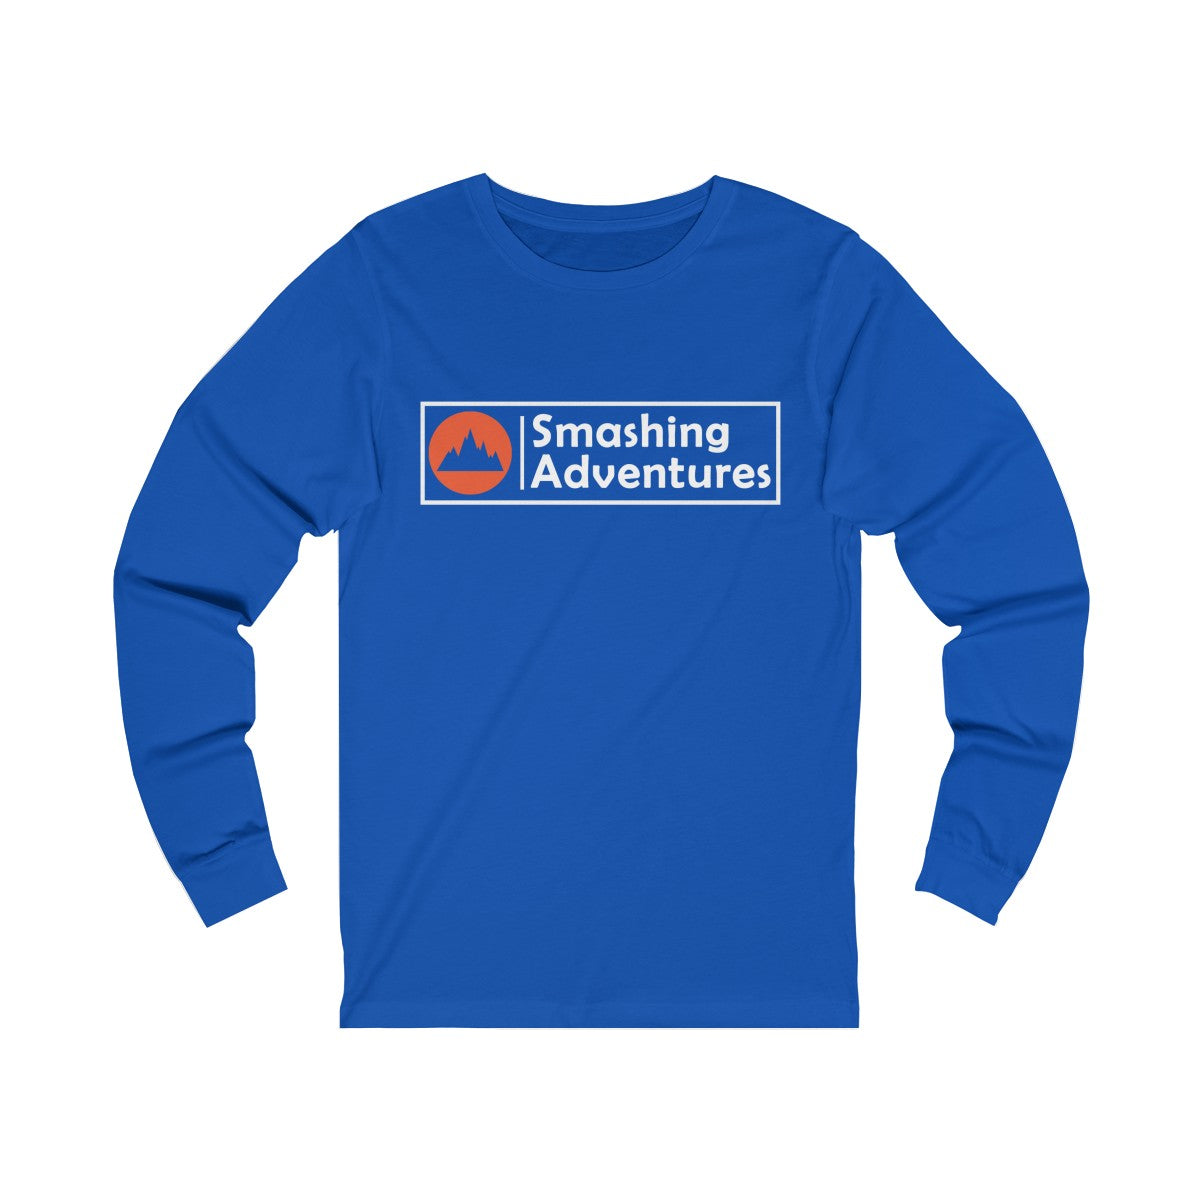 Smashing Adventures Long Sleeve Tee - *30% OFF*